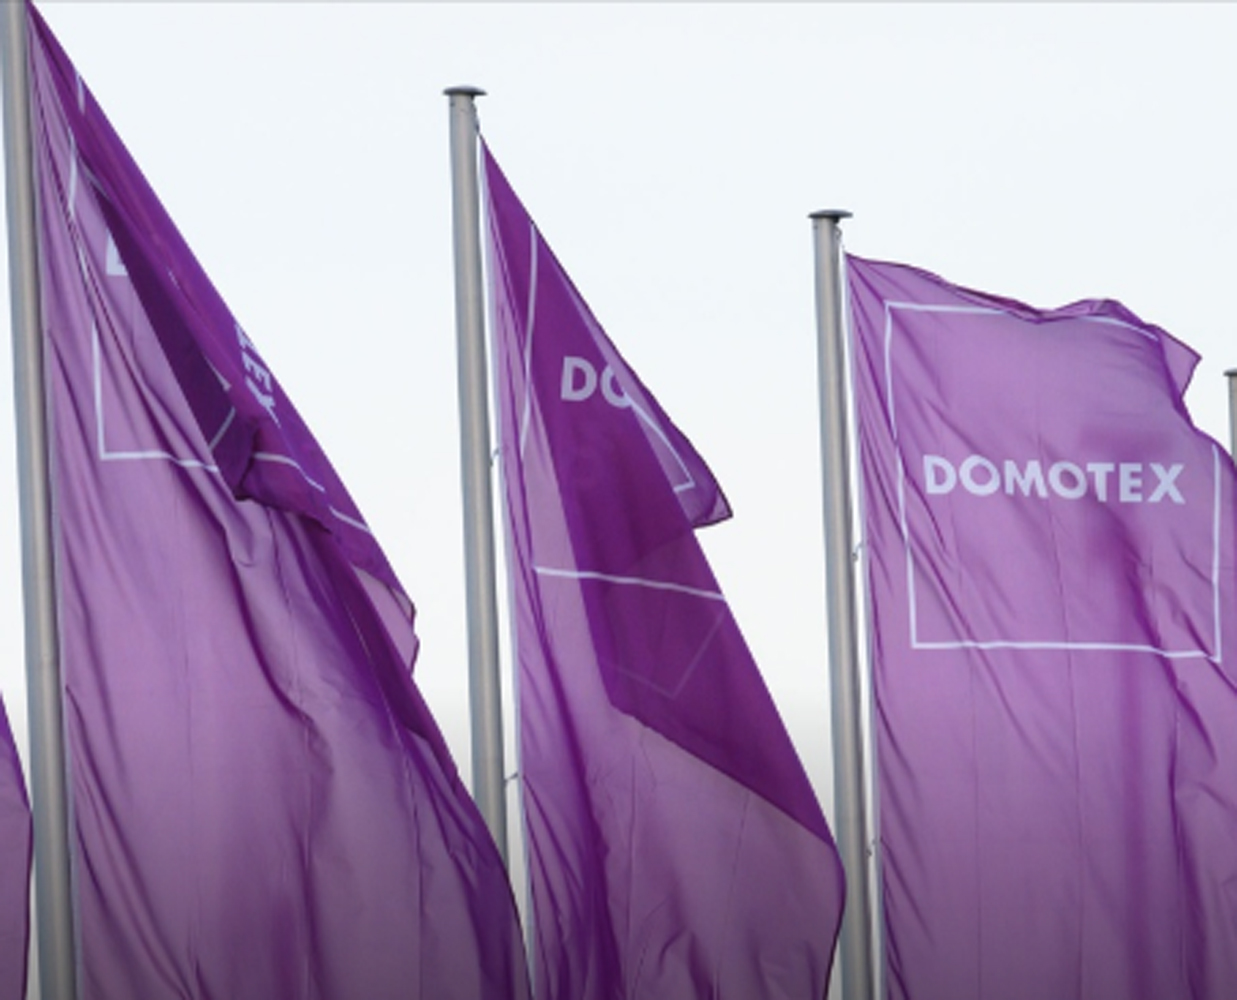 DOMOTEX adjusts trade show date and will now take place from 18 to 20 May 2021